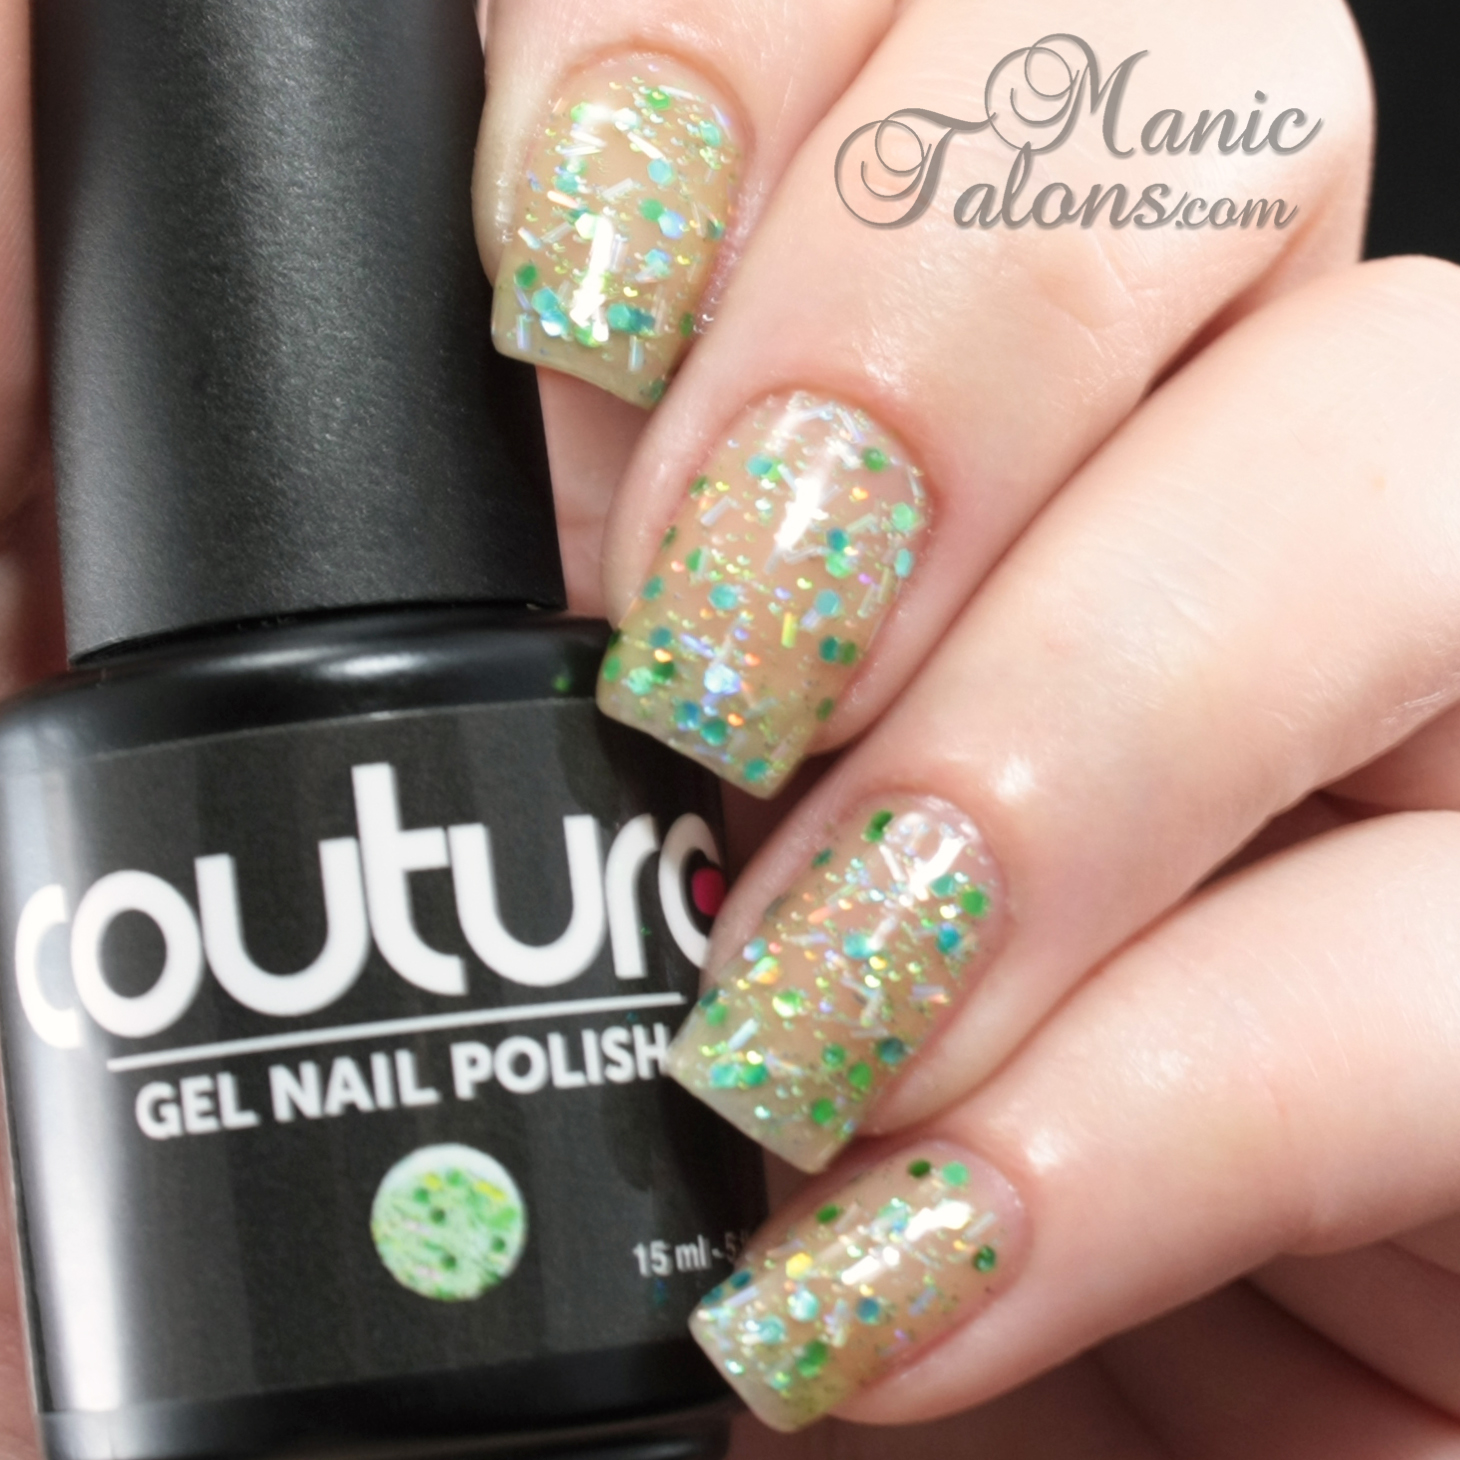 Manic Talons Nail Design Couture Gel Polish All That Glitters